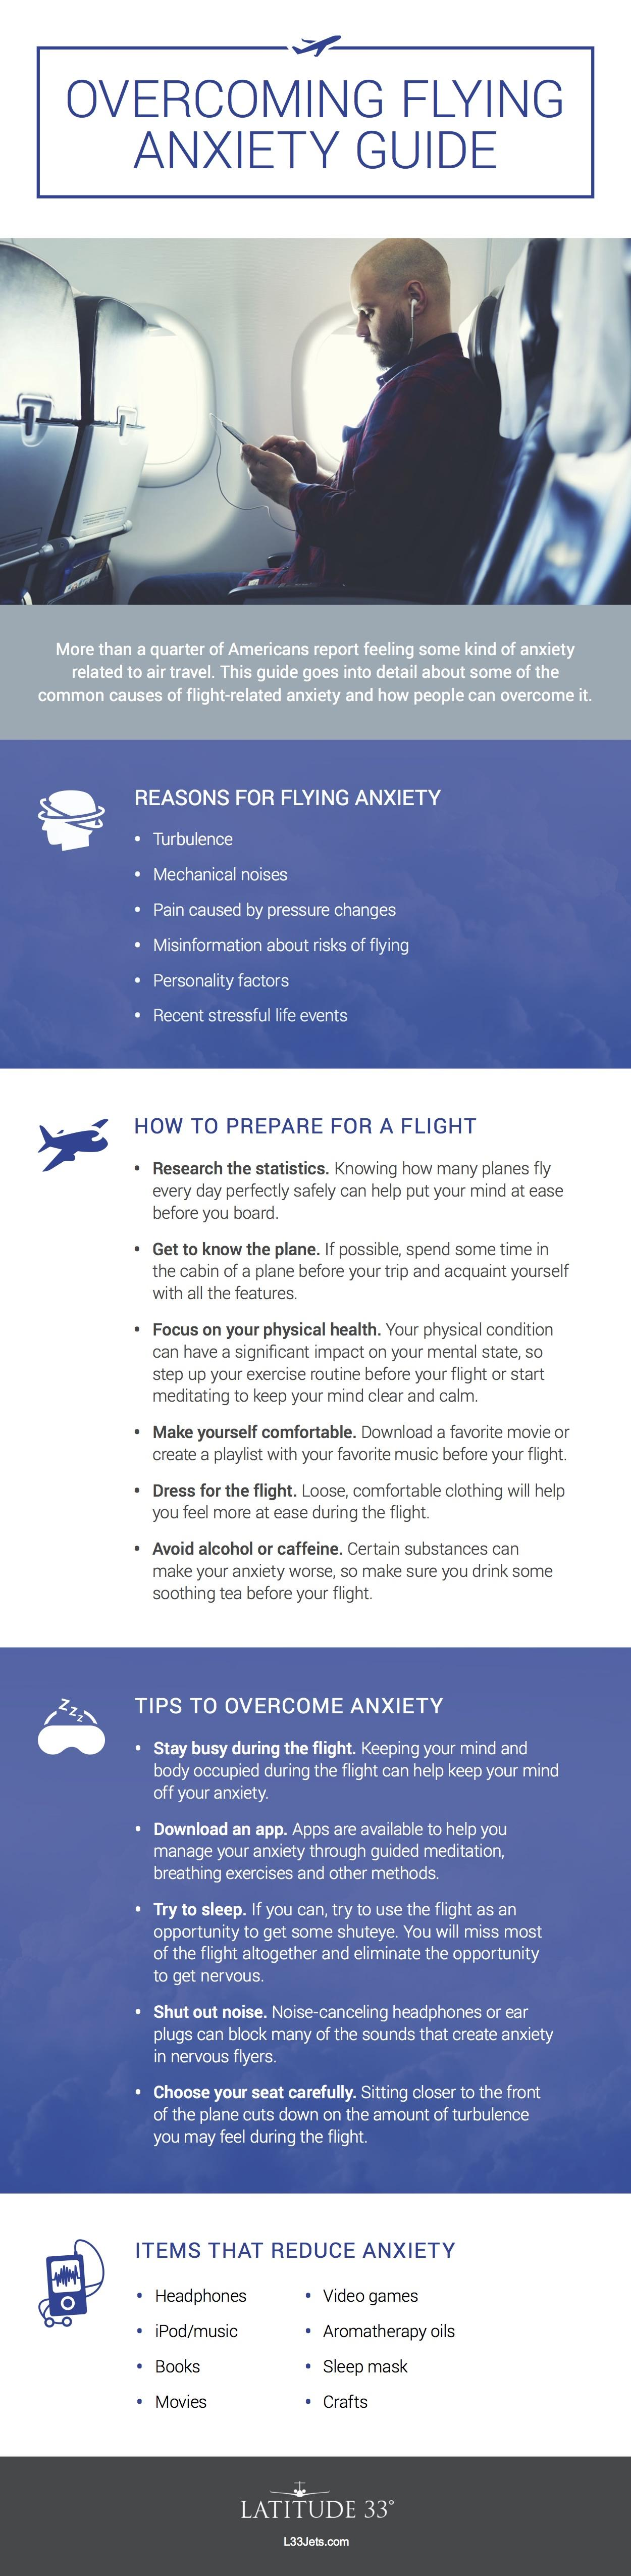 Overcoming Flying Anxiety Guide - Latitude 33 Aviation